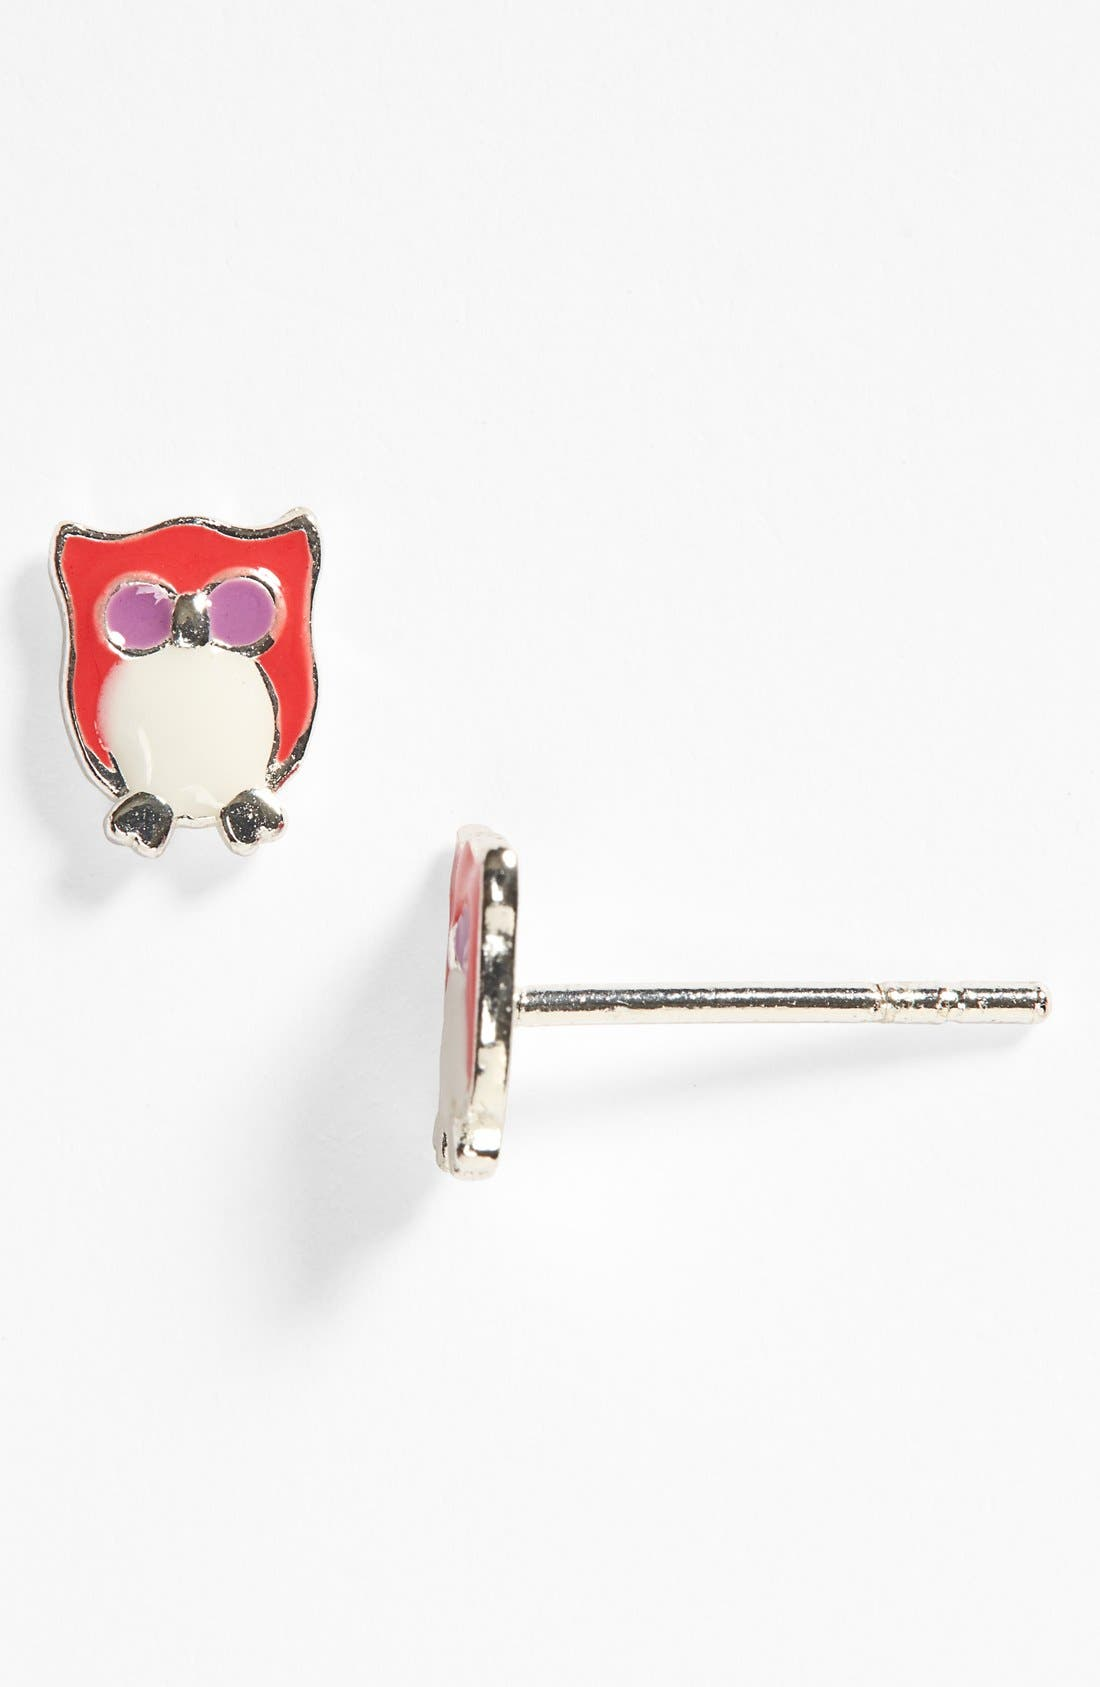 Owl Sterling Silver Stud Earrings,                             Main thumbnail 1, color,                             Silver